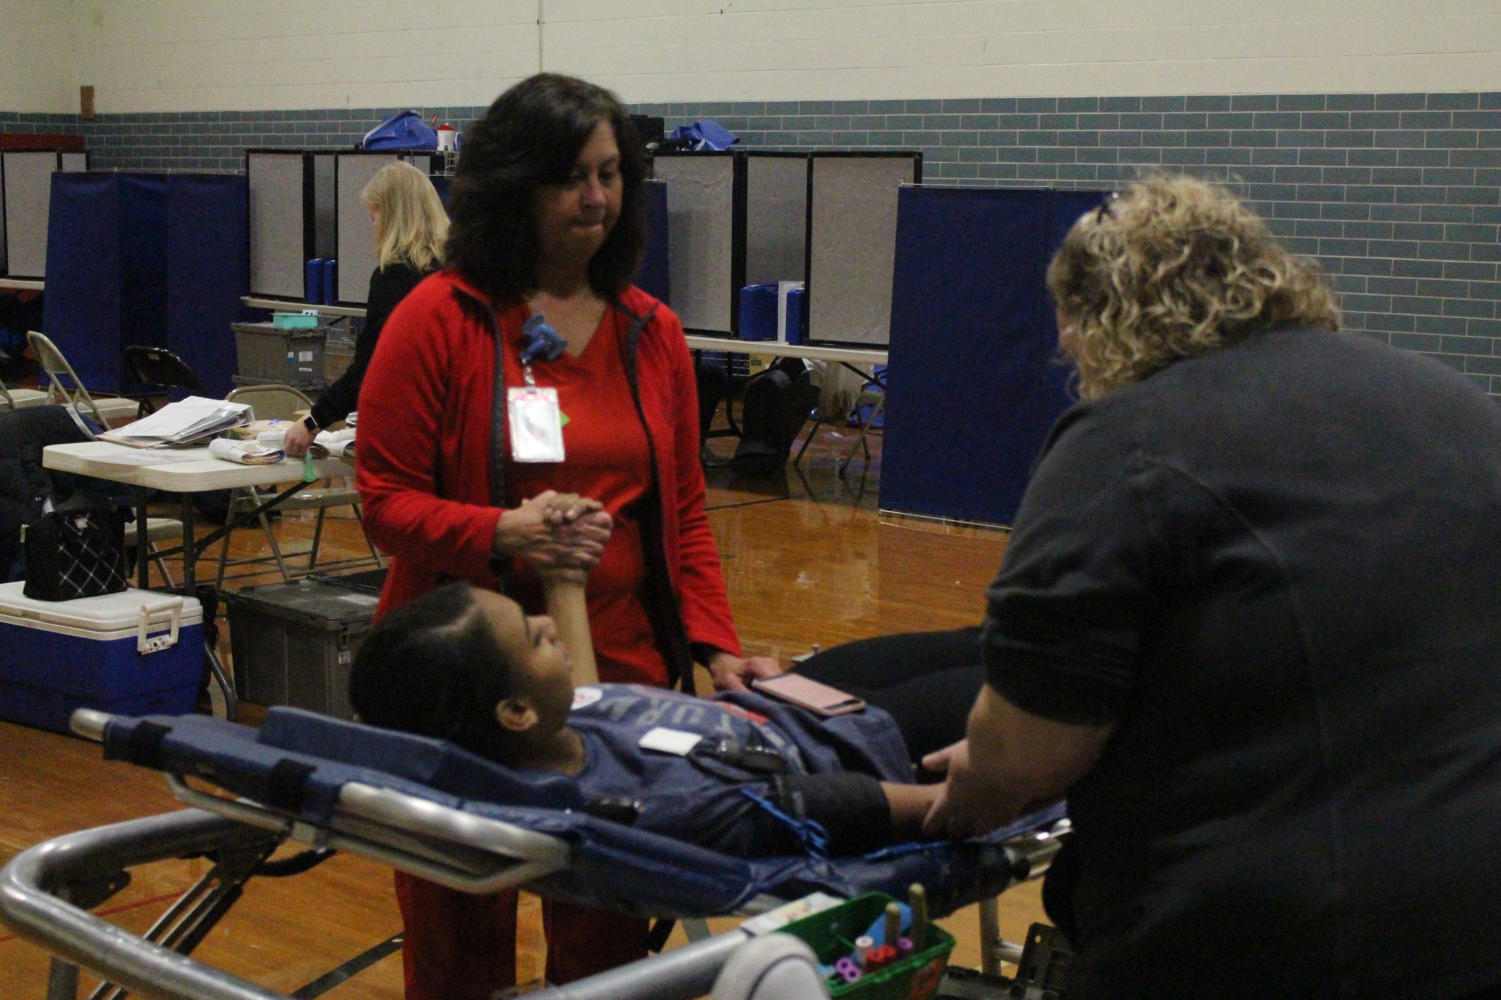 Jayla Pruitt-Switzer gives blood at last year's Blood Drive.